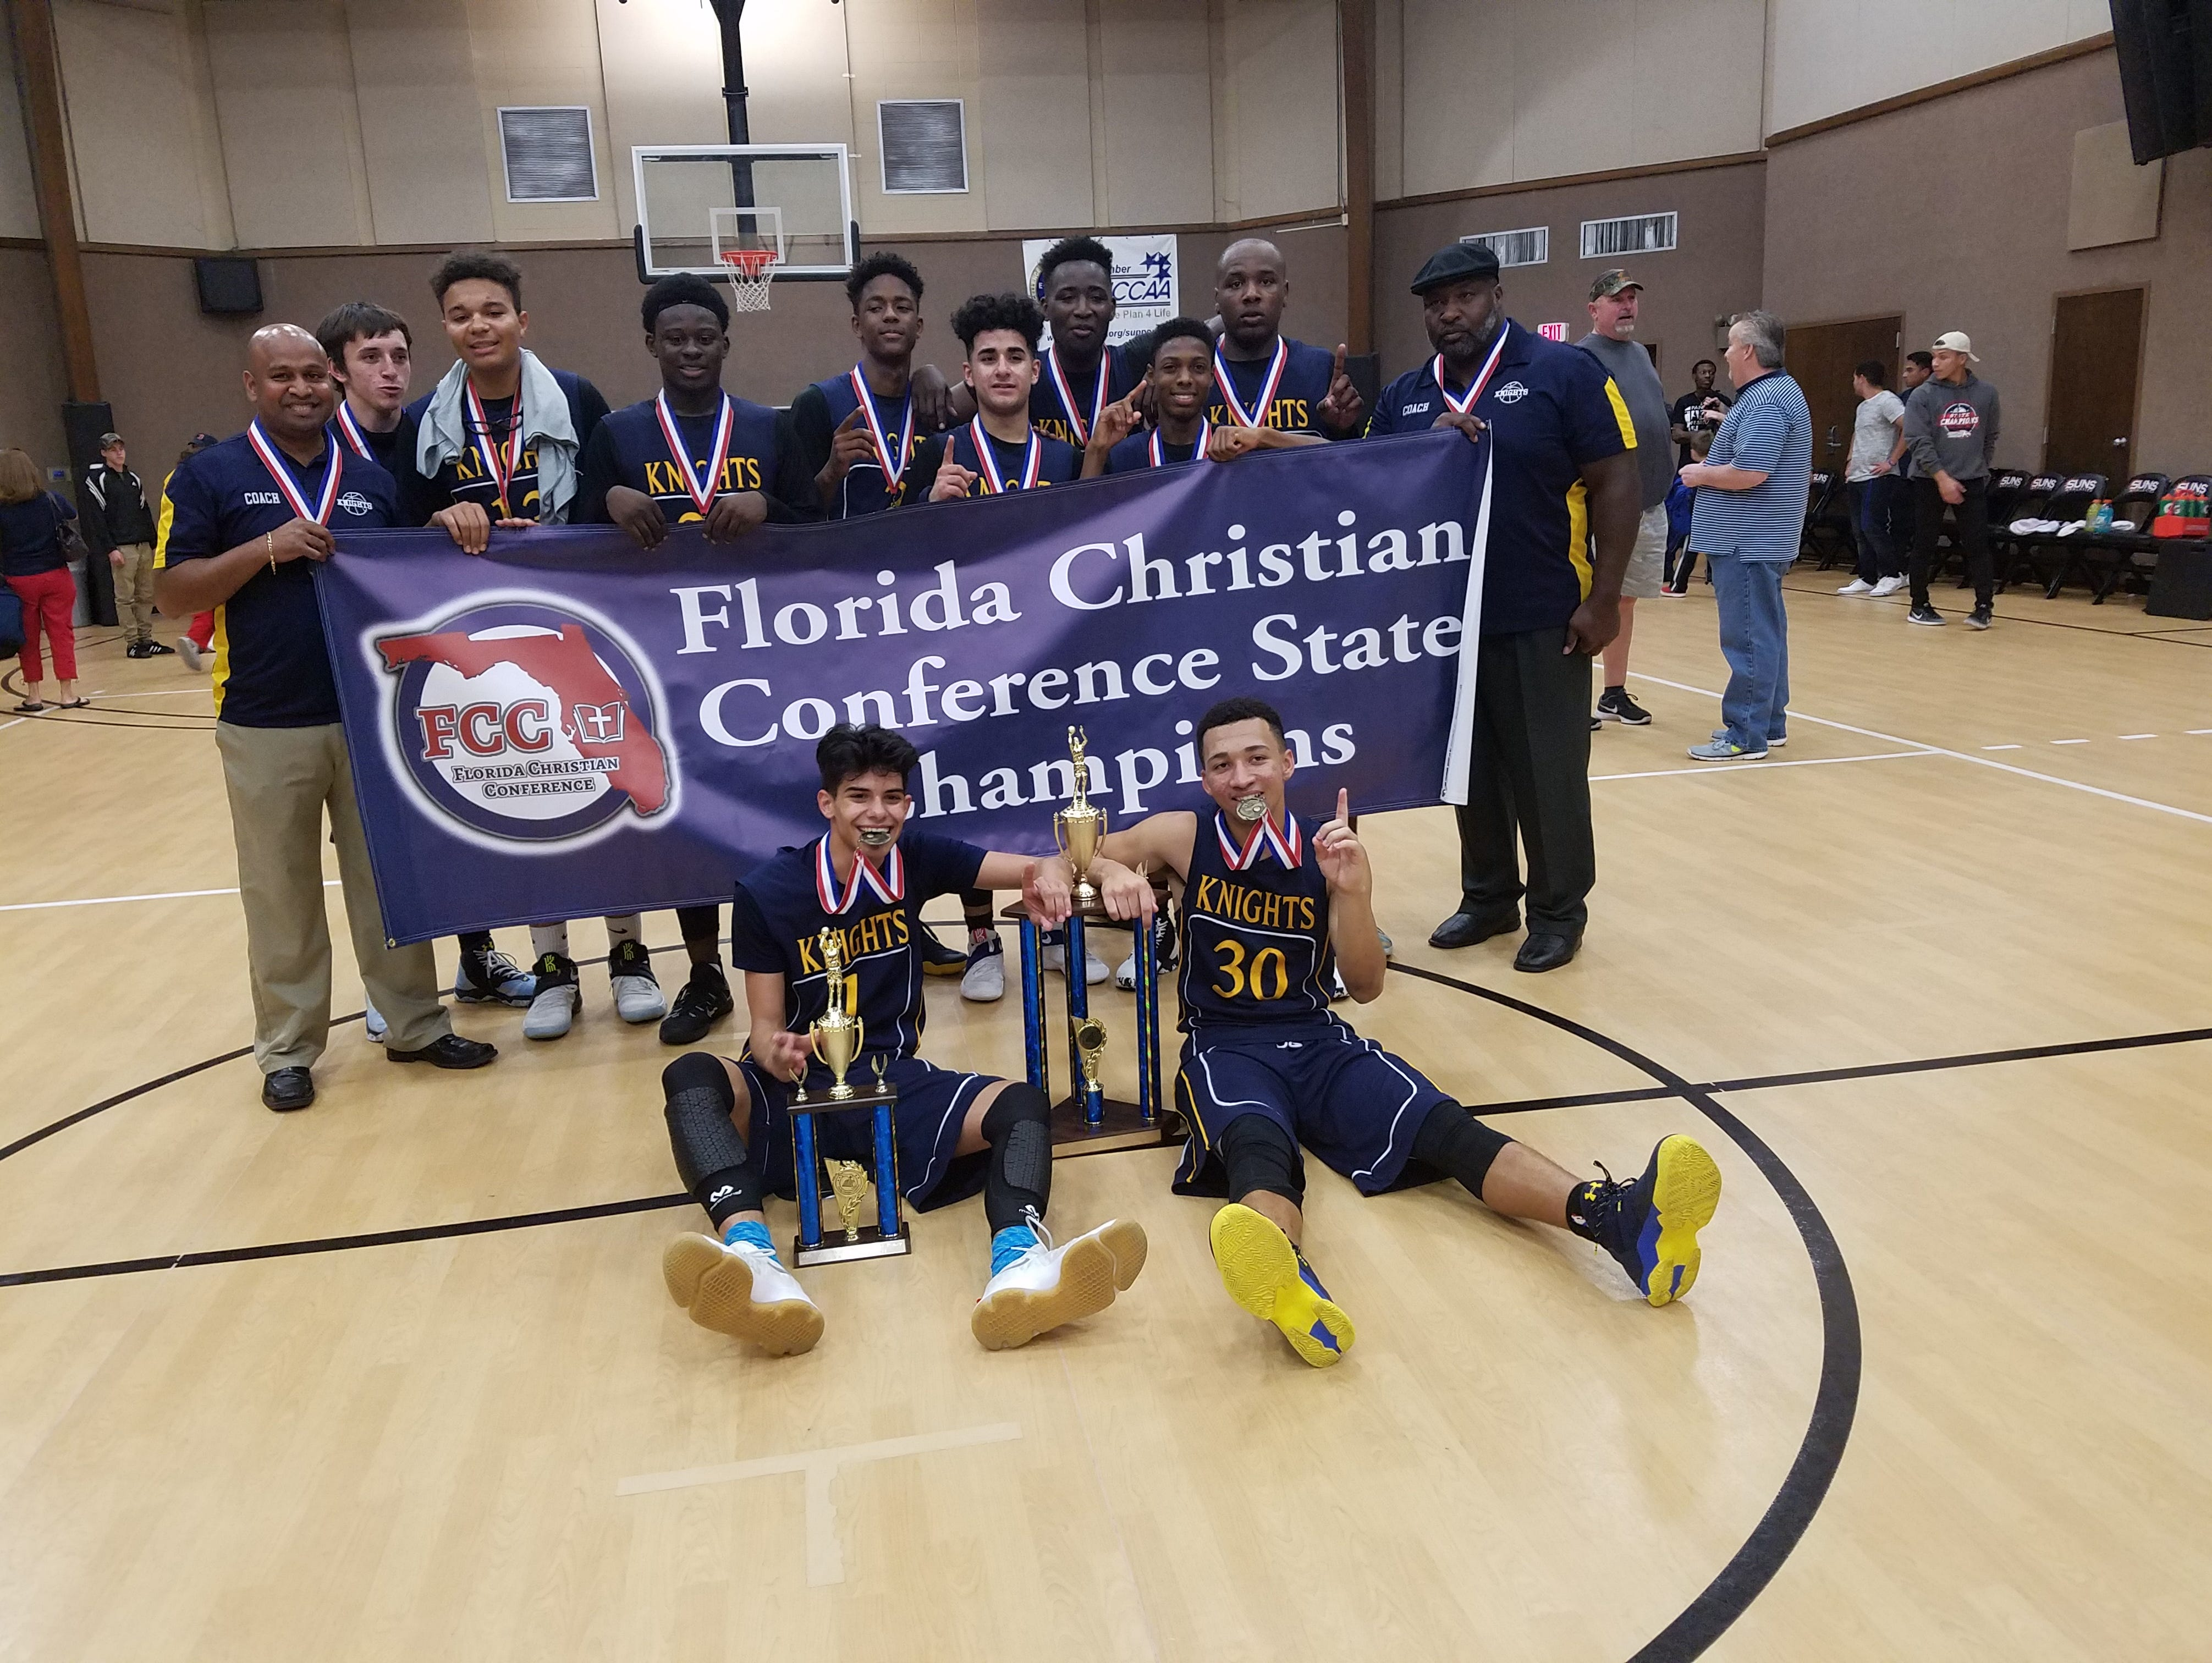 The West Melbourne Christian Academy Knights boys' basketball team was the Florida Christian Conference state champions, as well as runners-up in its division in the National Association of Christian Athletes tournament.